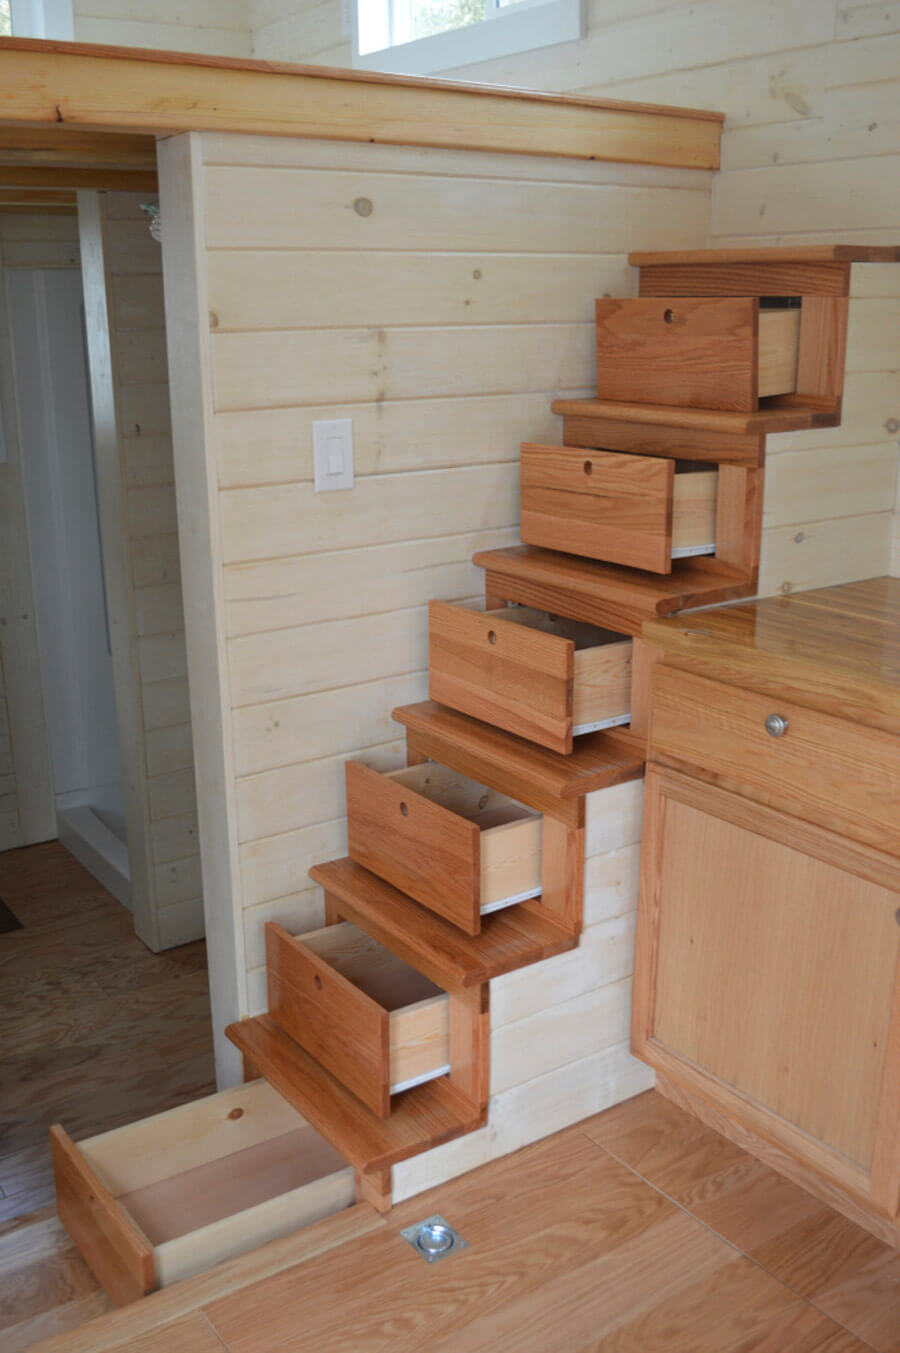 Stair Drawers: Expert Level Storage